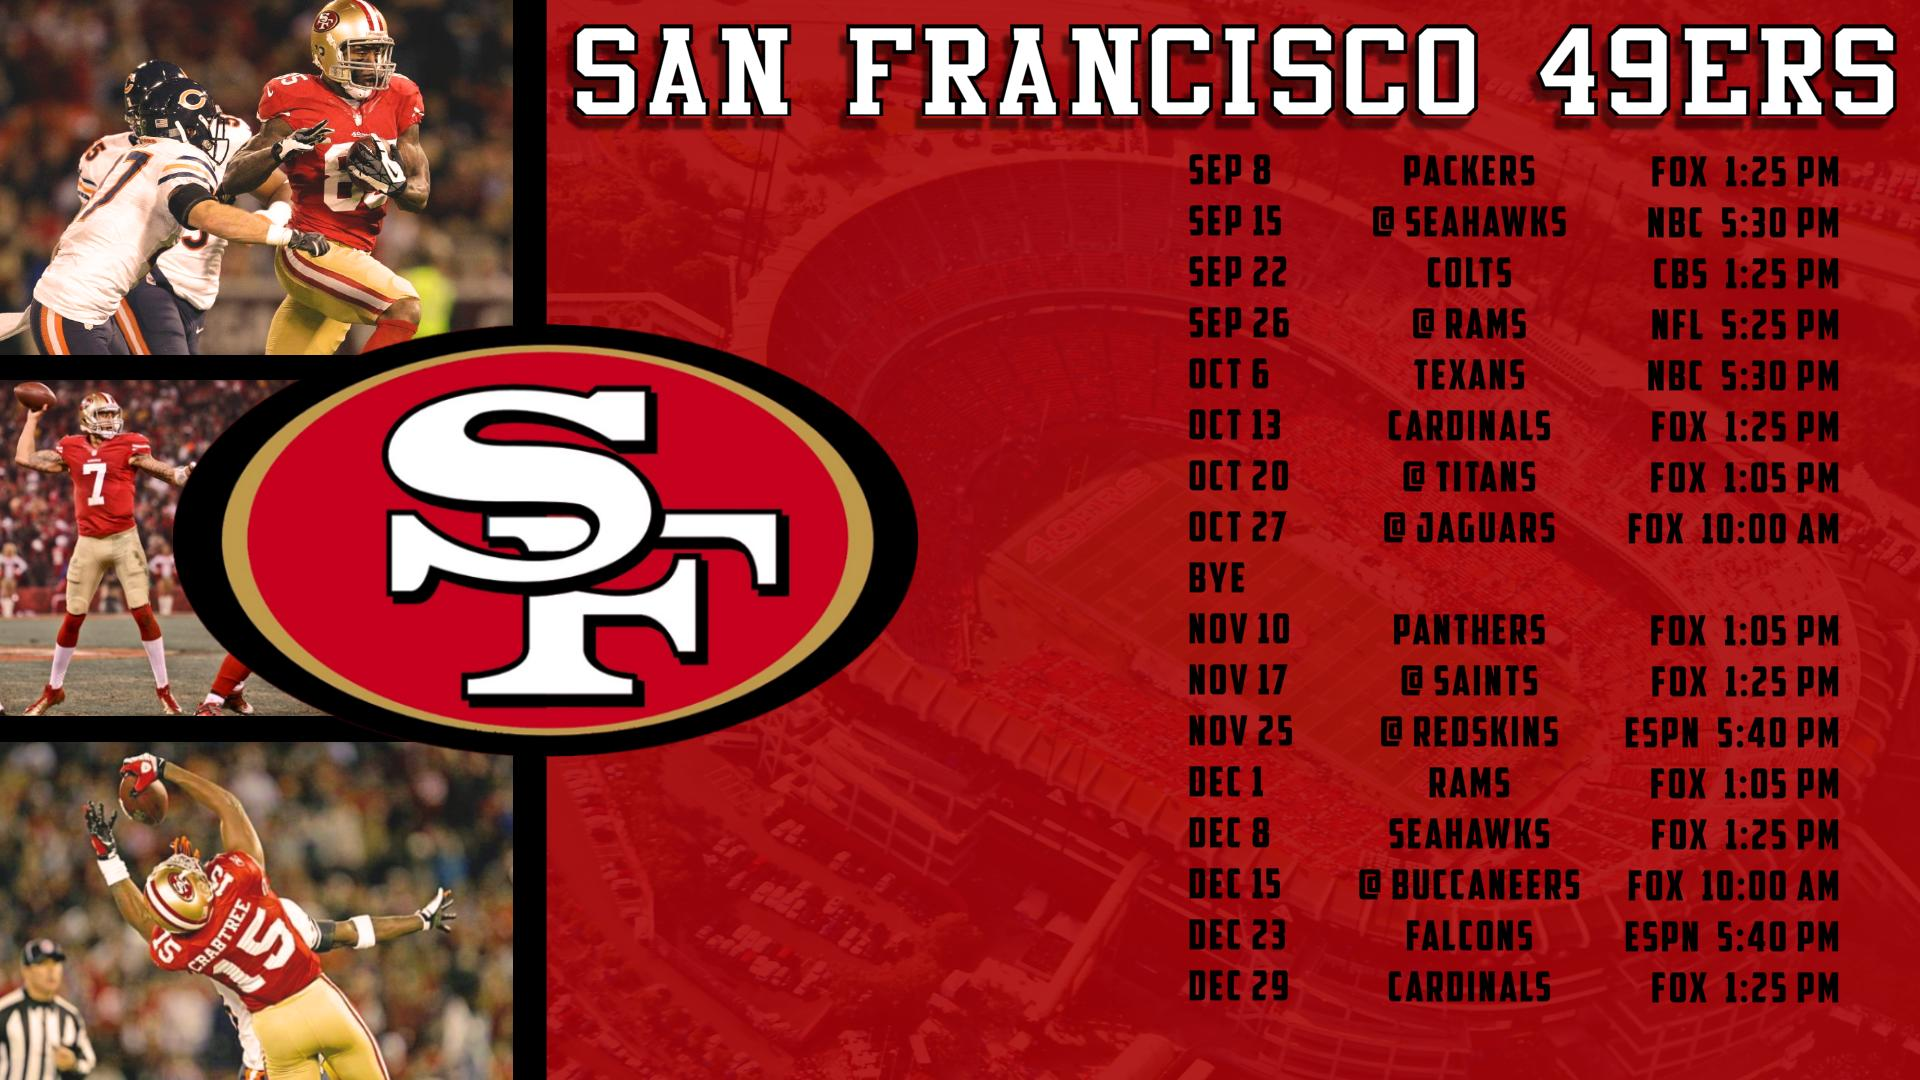 photograph about 49ers Printable Schedule called 67+] 49ers 2015 Program Wallpaper upon WallpaperSafari